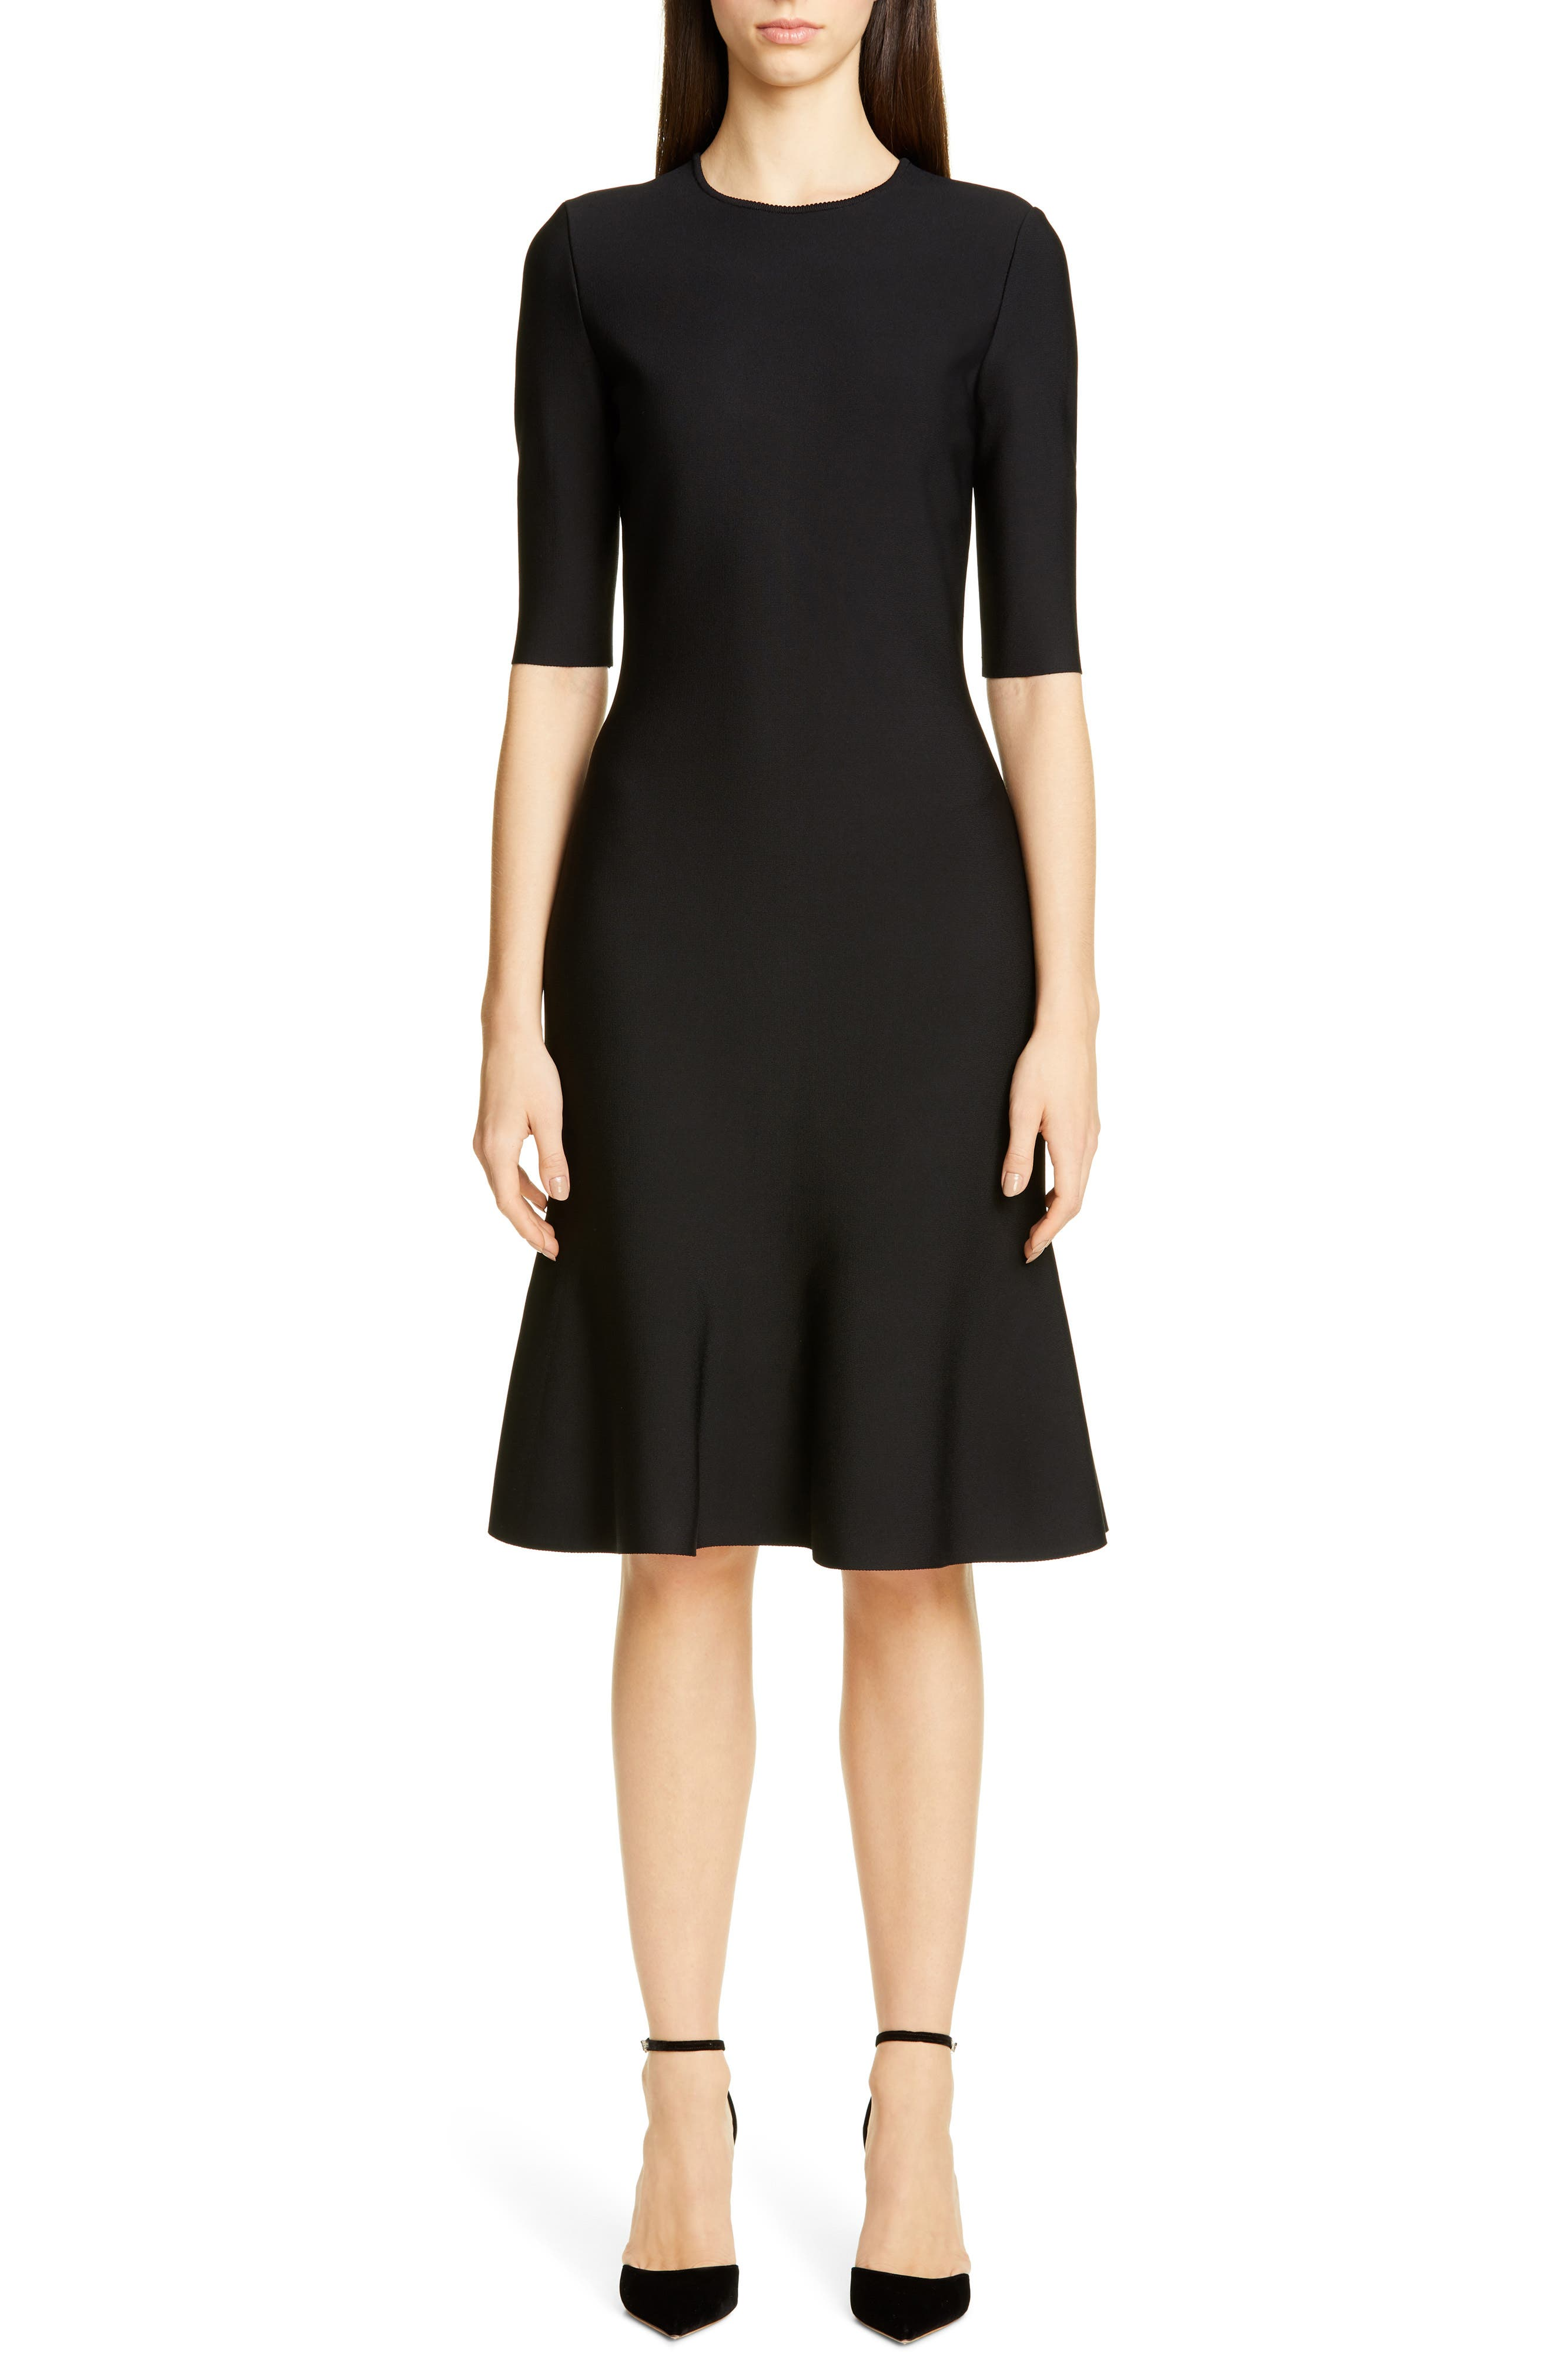 St. John Collection Luxe Sculpture Elbow Sleeve Dress, (similar to 1) - Black